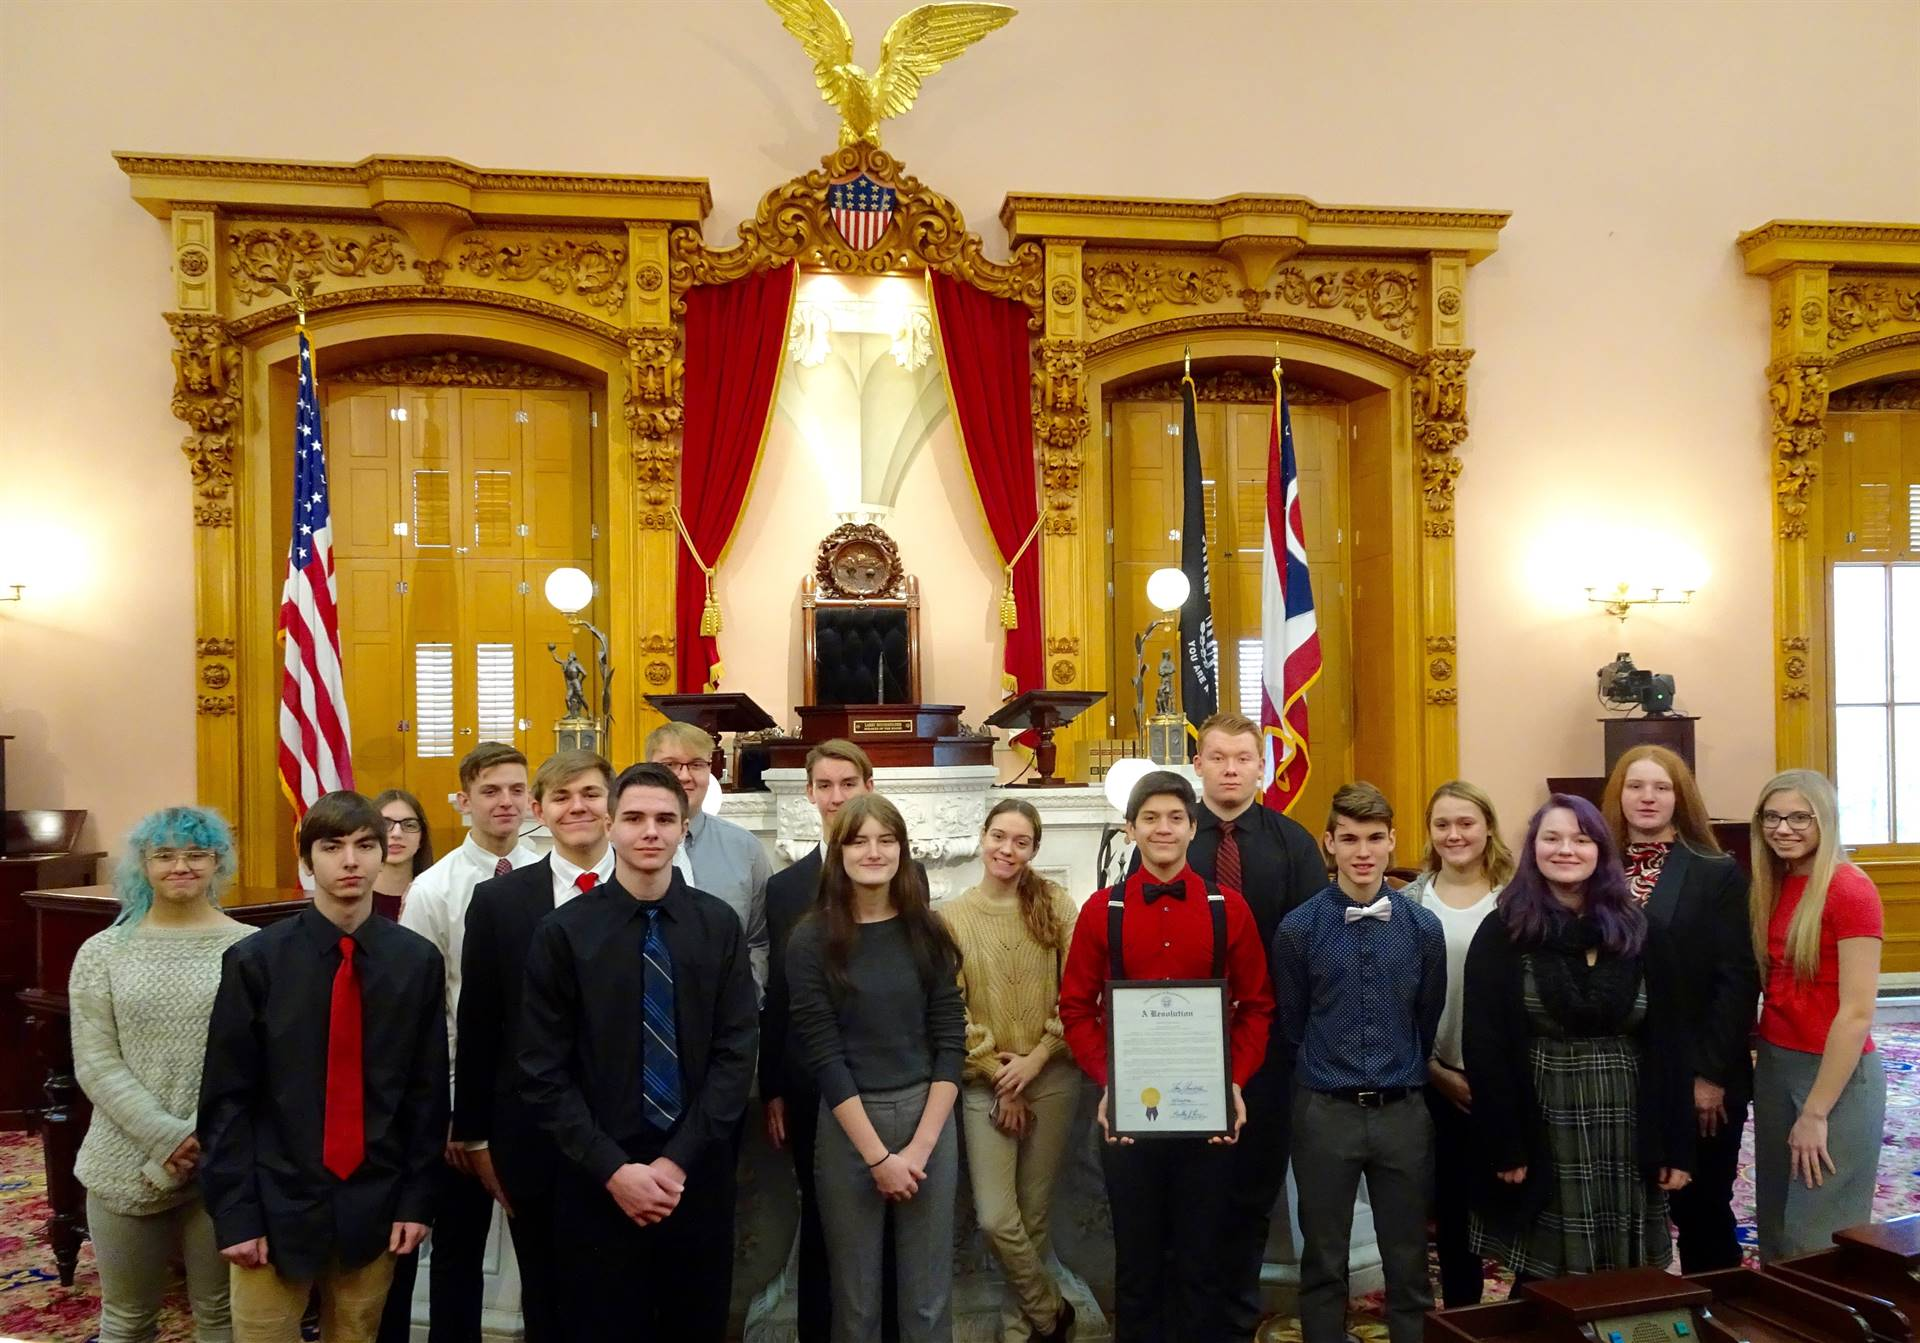 ART students at Statehouse